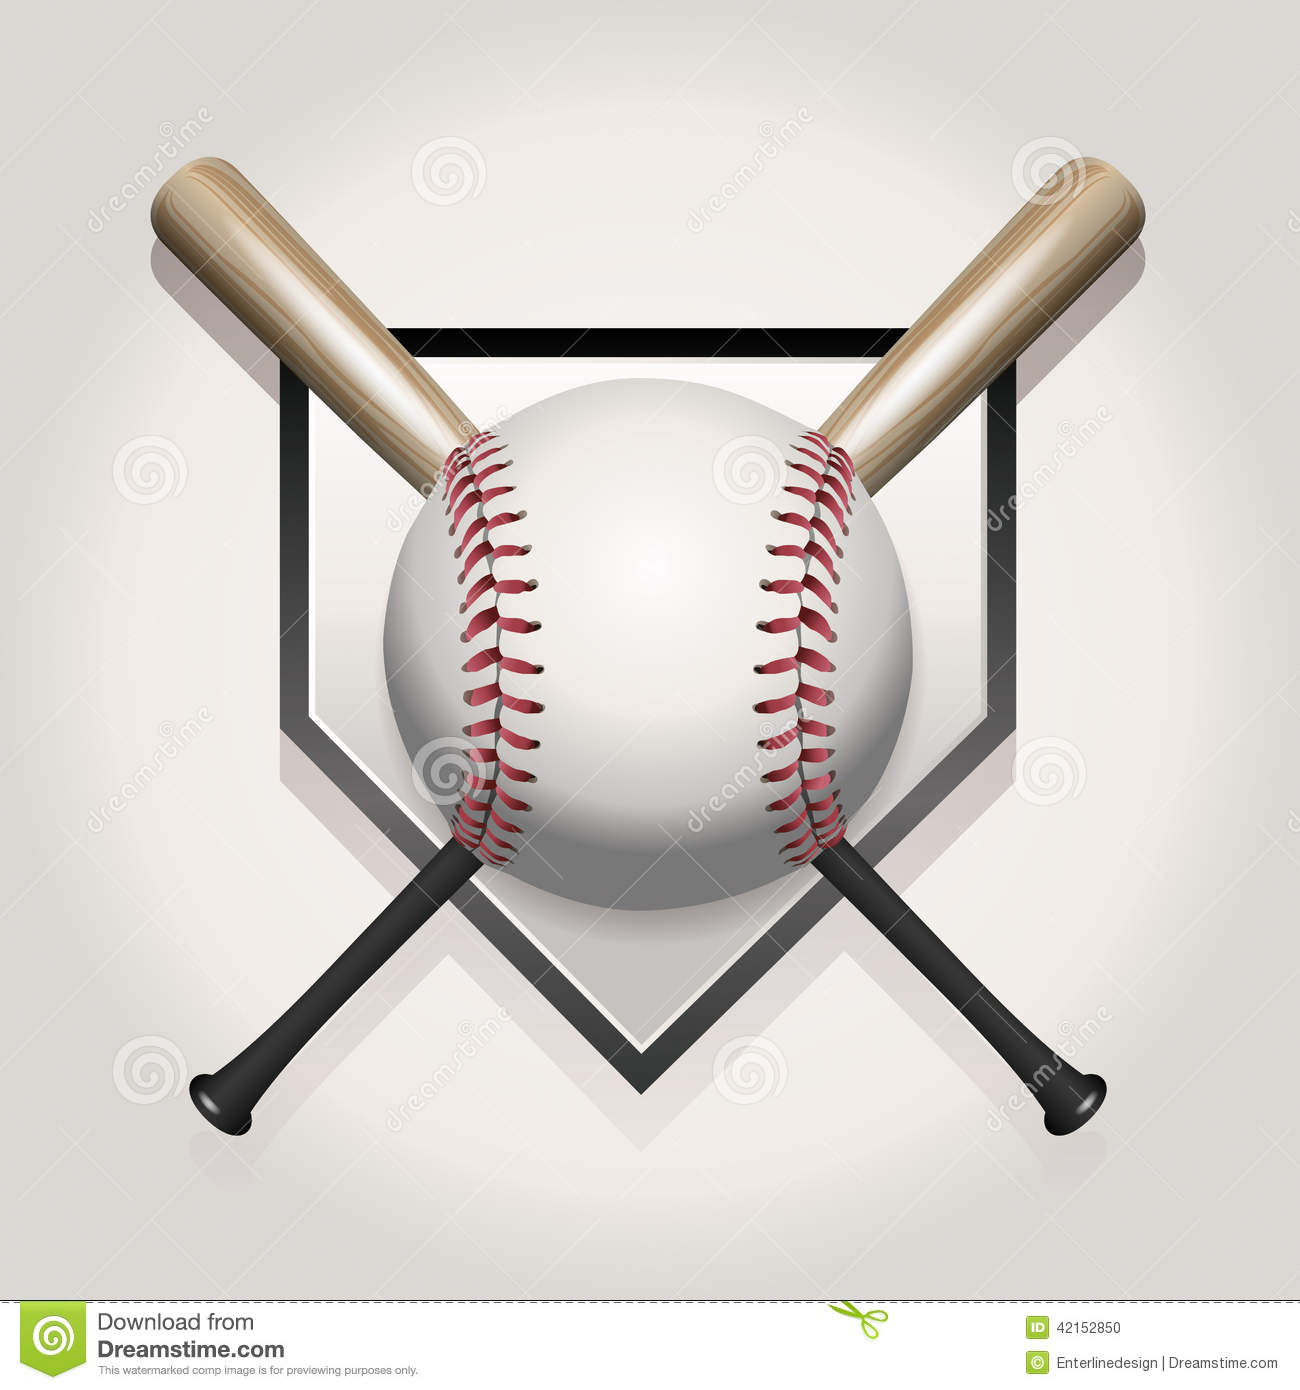 Baseball Or Softball Pennant With Crossed Bats Stock Photography ...